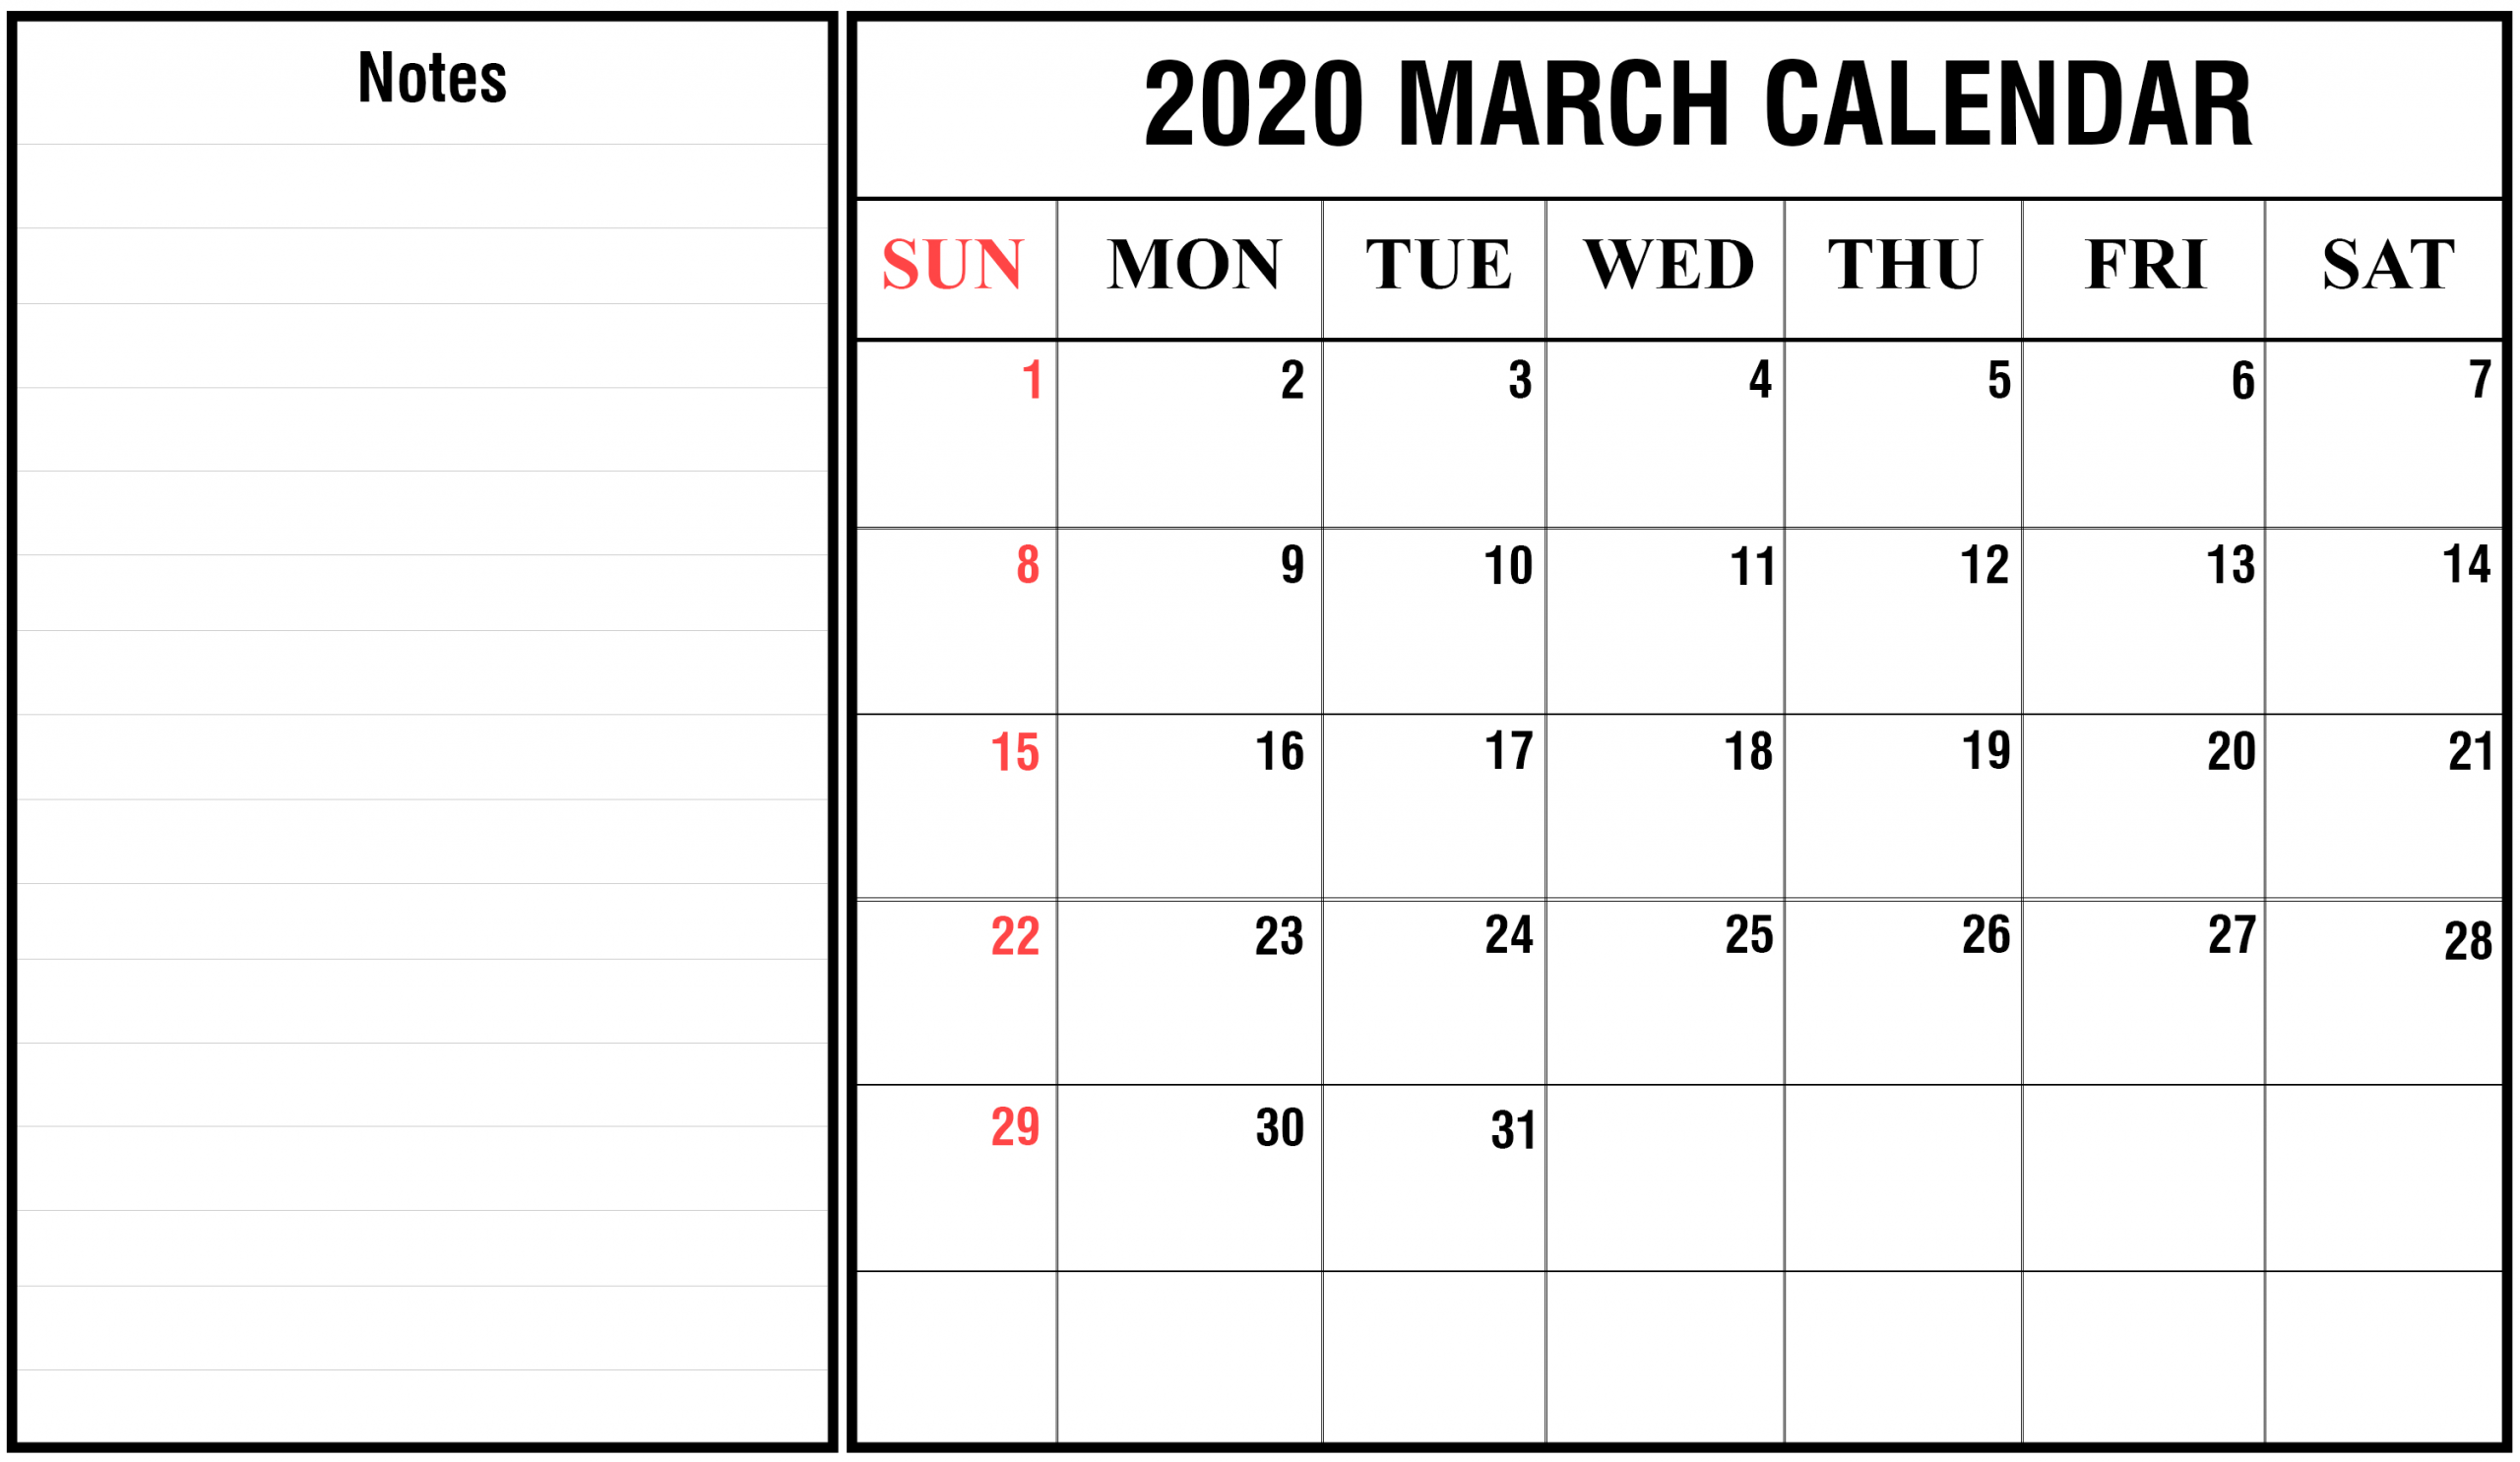 2020 Calendar You Can Edit | Calendar Template Printable Calanda Templete That I Can Edit